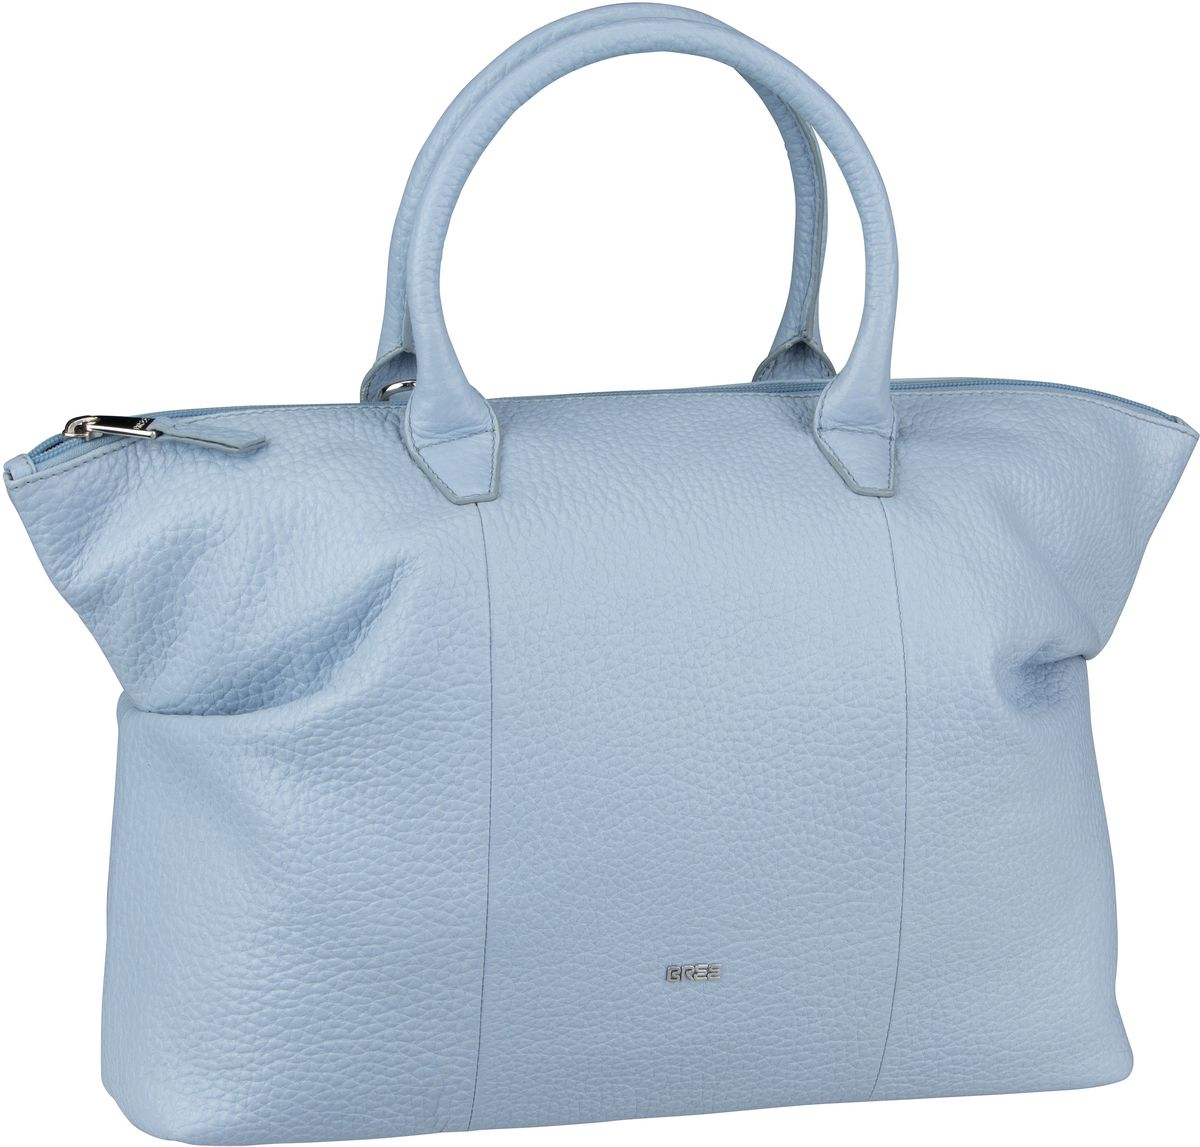 Handtasche Icon Bag Celestial Blue